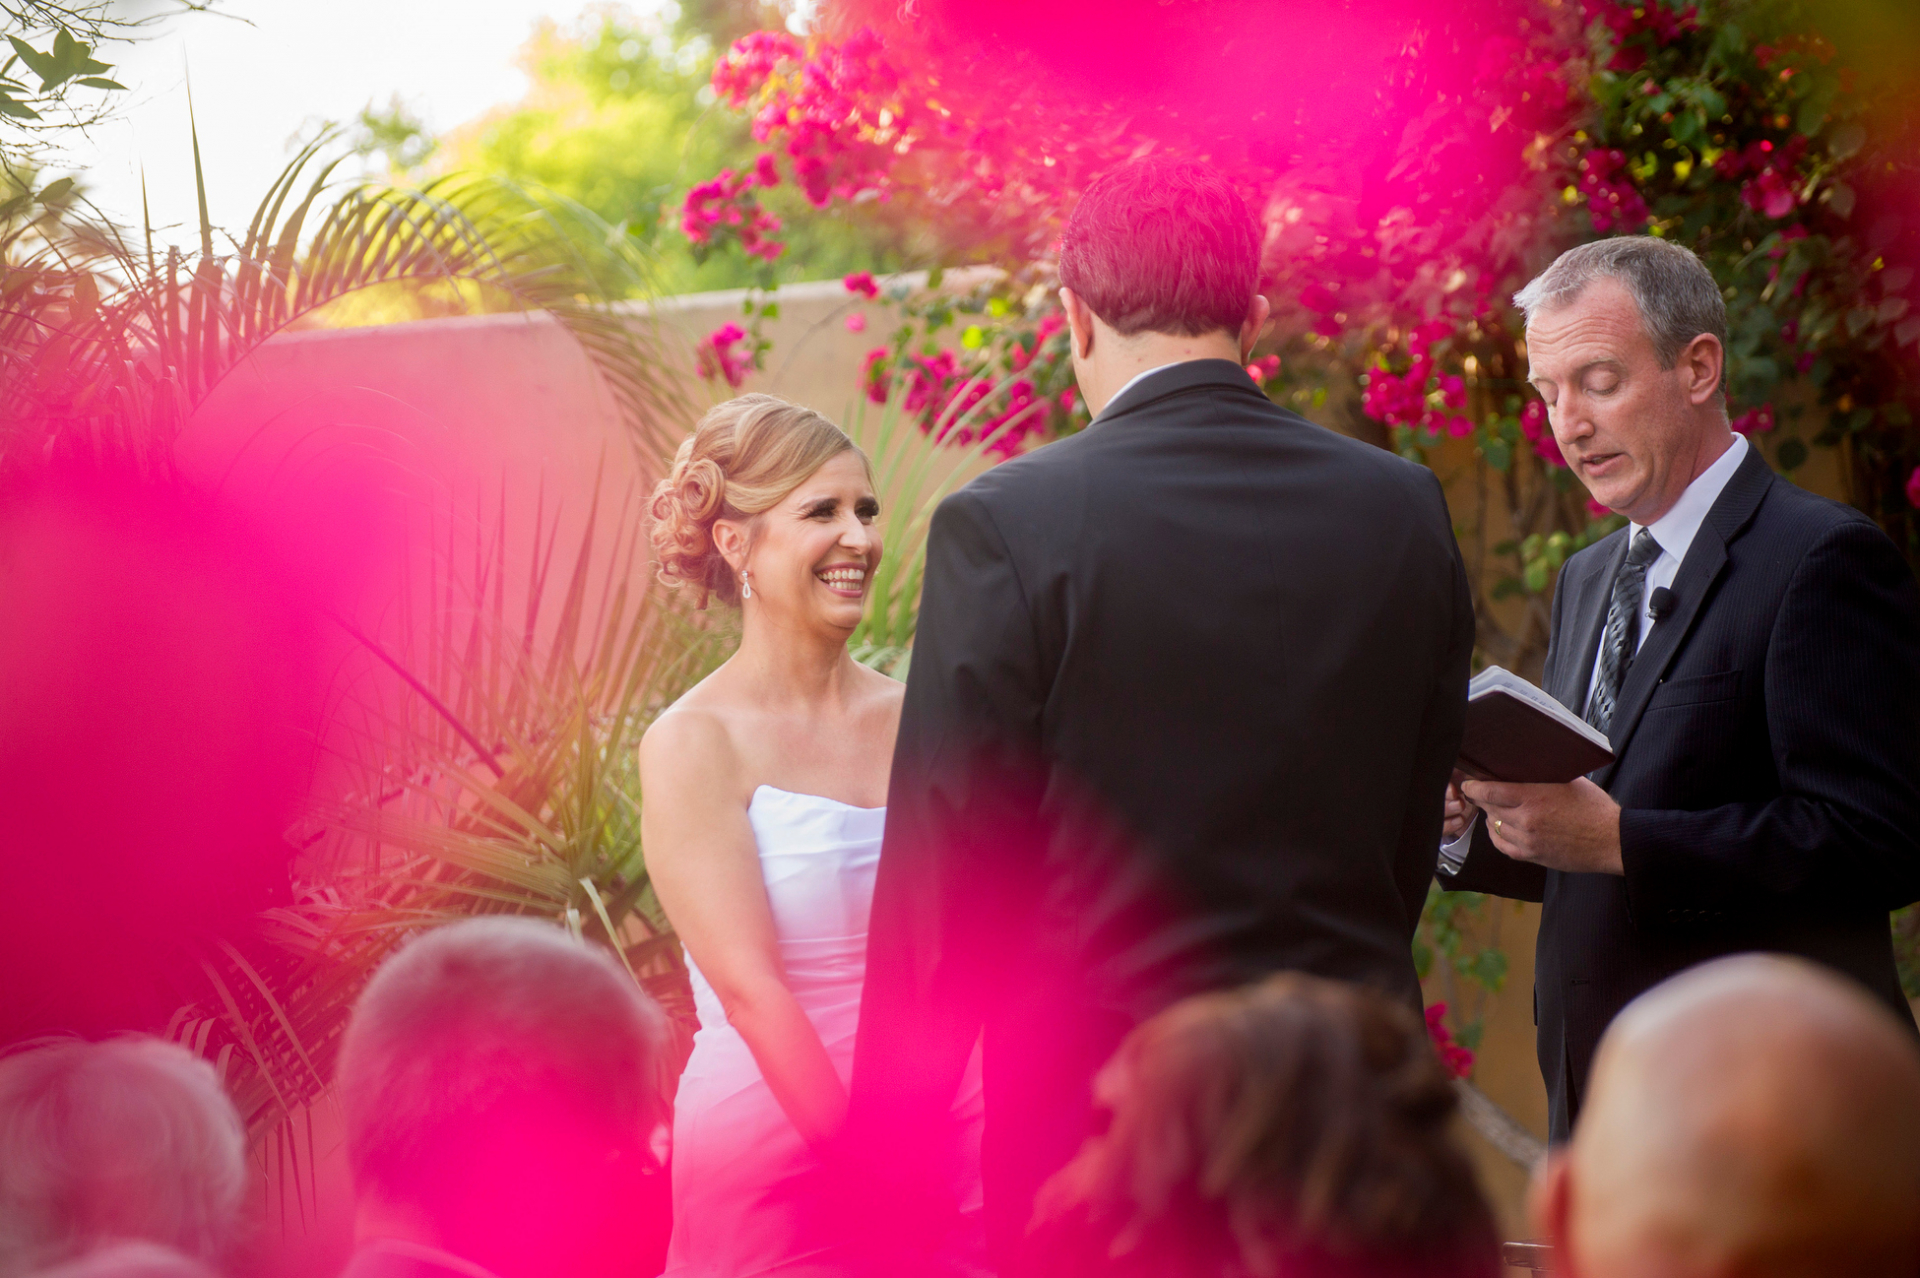 Royal Palms Resort of Arizona - Elopement Ceremony Photos | Peeking through the pink flowers surrounding the ceremony